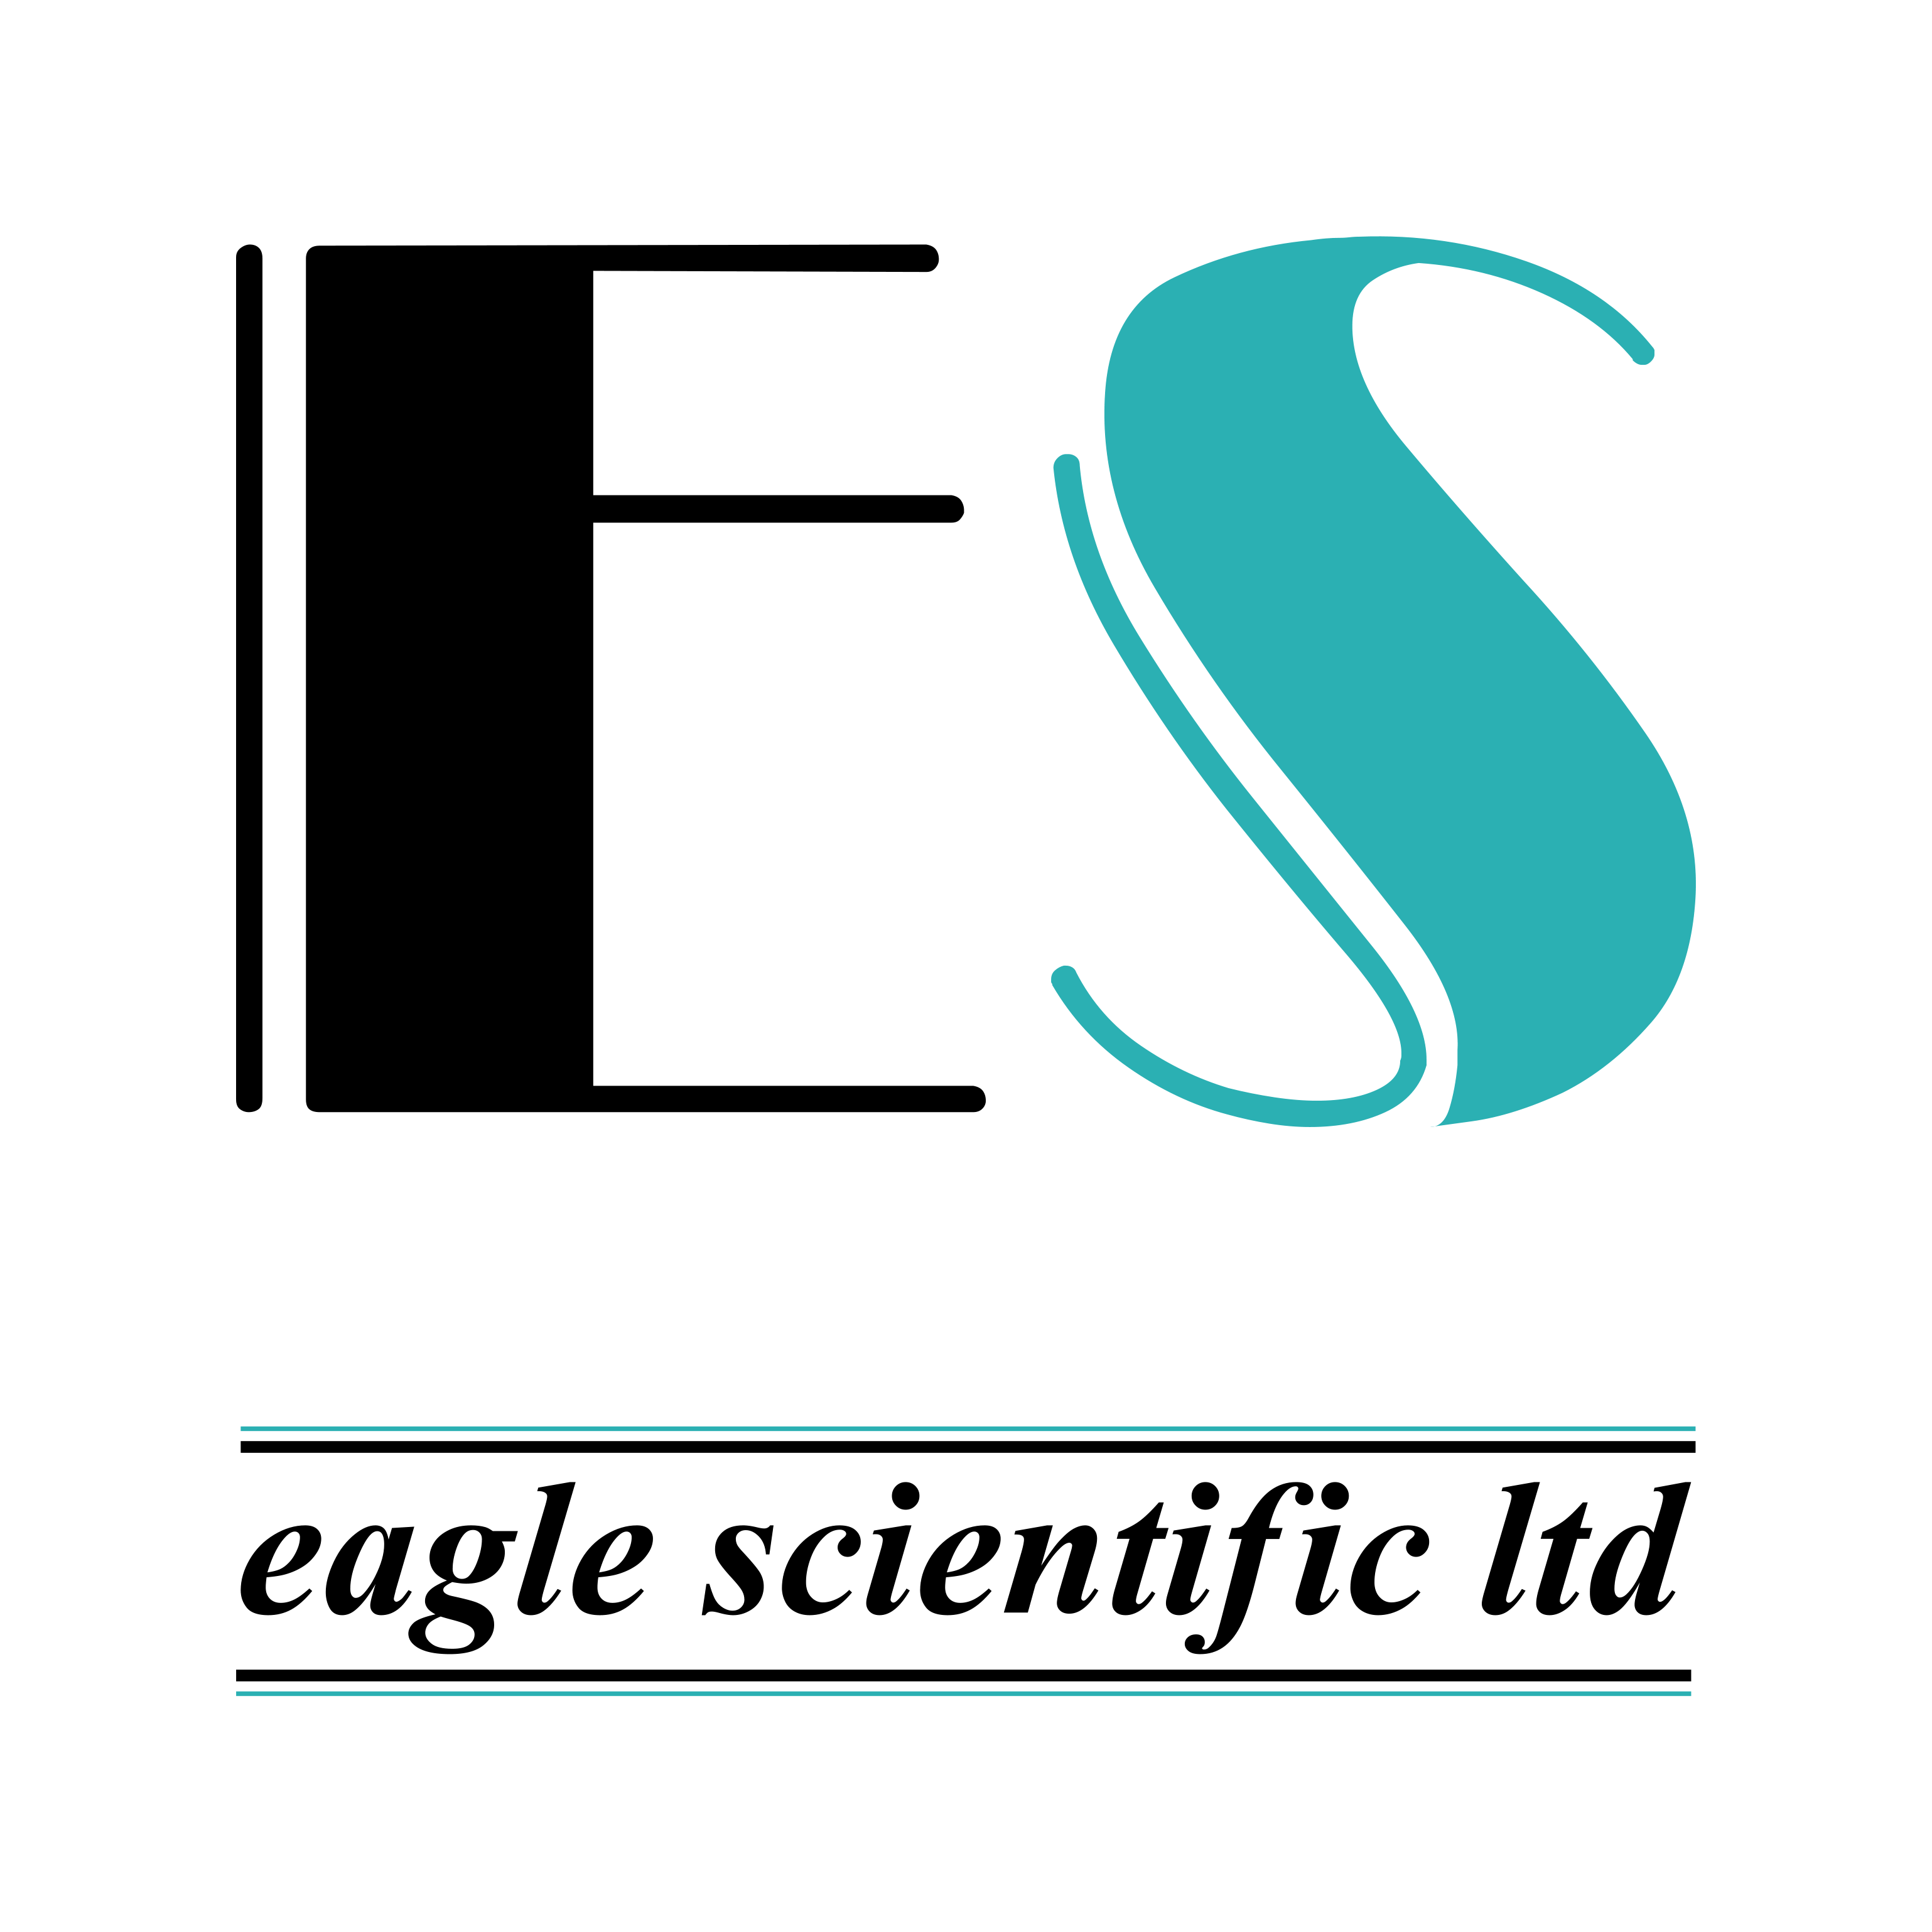 Eagle Scientific